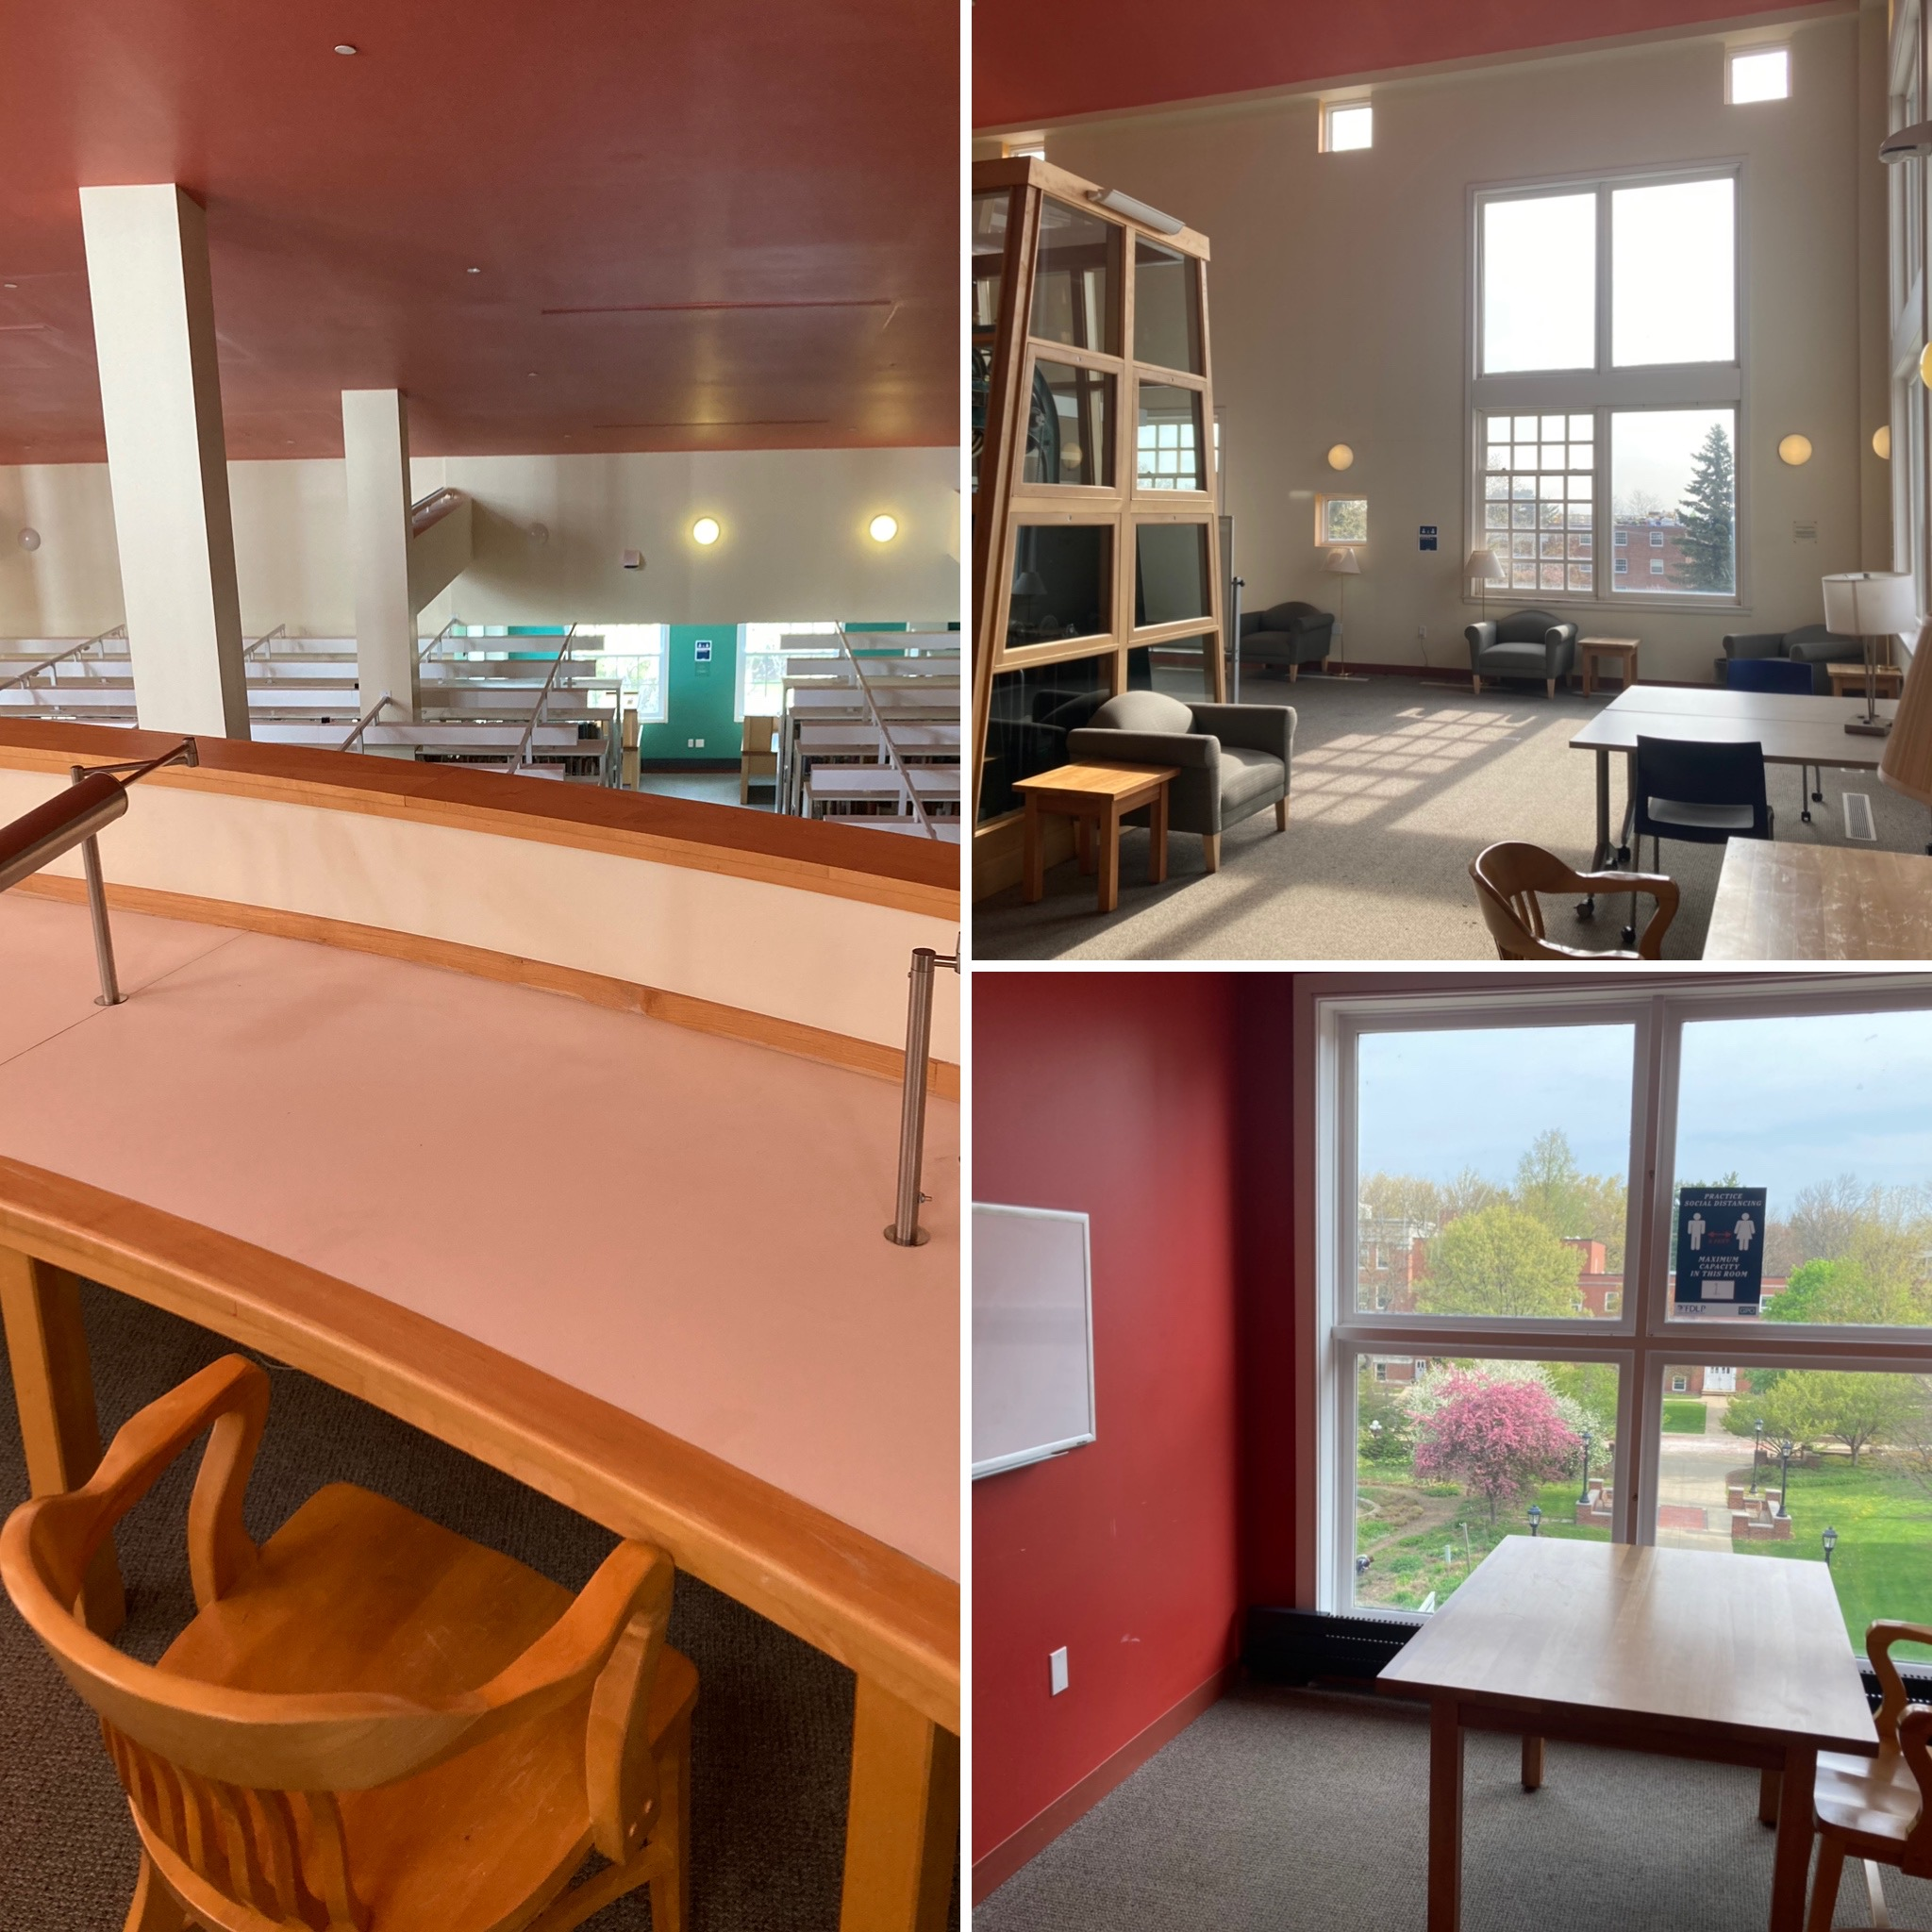 three study spaces with tables and chairs